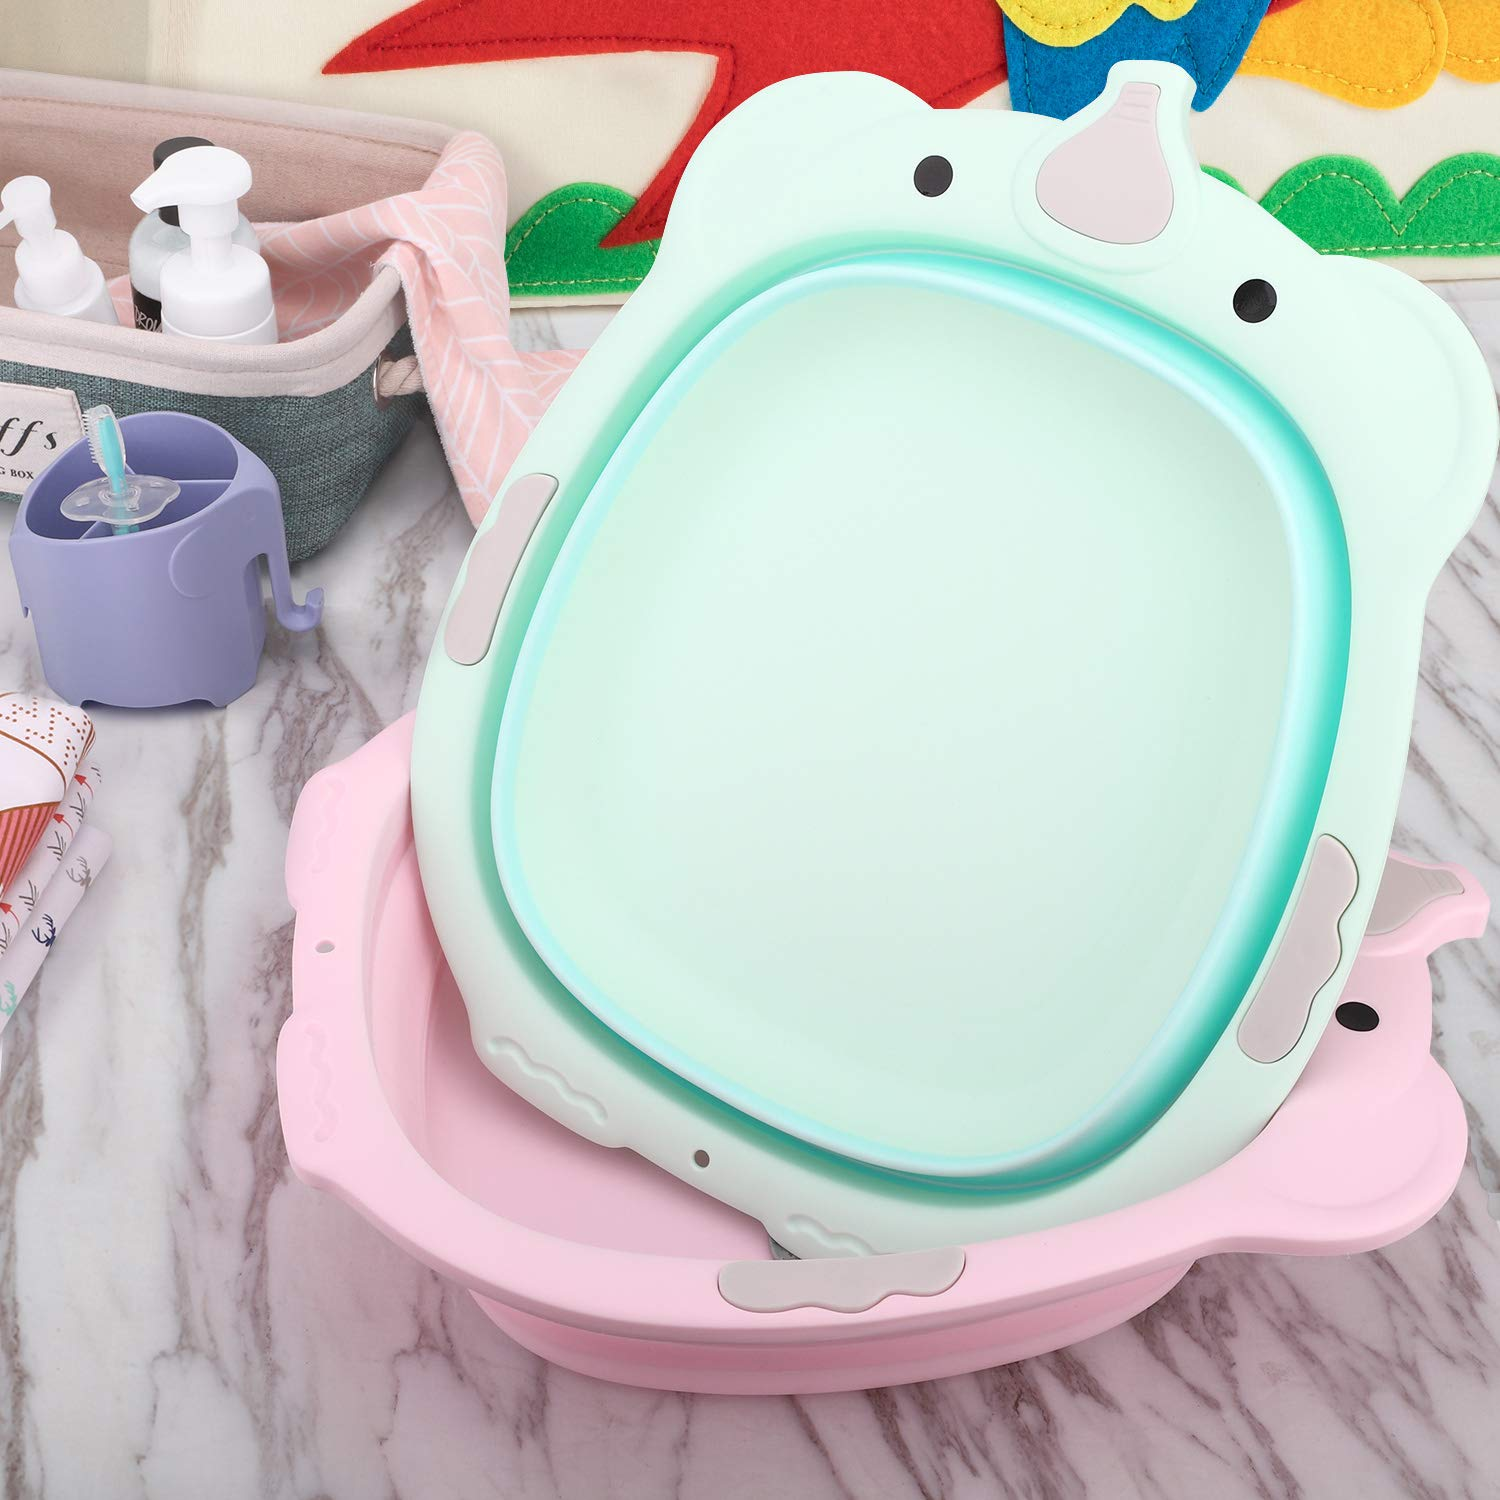 Pink Zooawa Collapsible Dish Tub BPA Free Elephant Foldable Camp Wash Basin Plastic Portable Washing Basin for Home Travel Outdoor Use